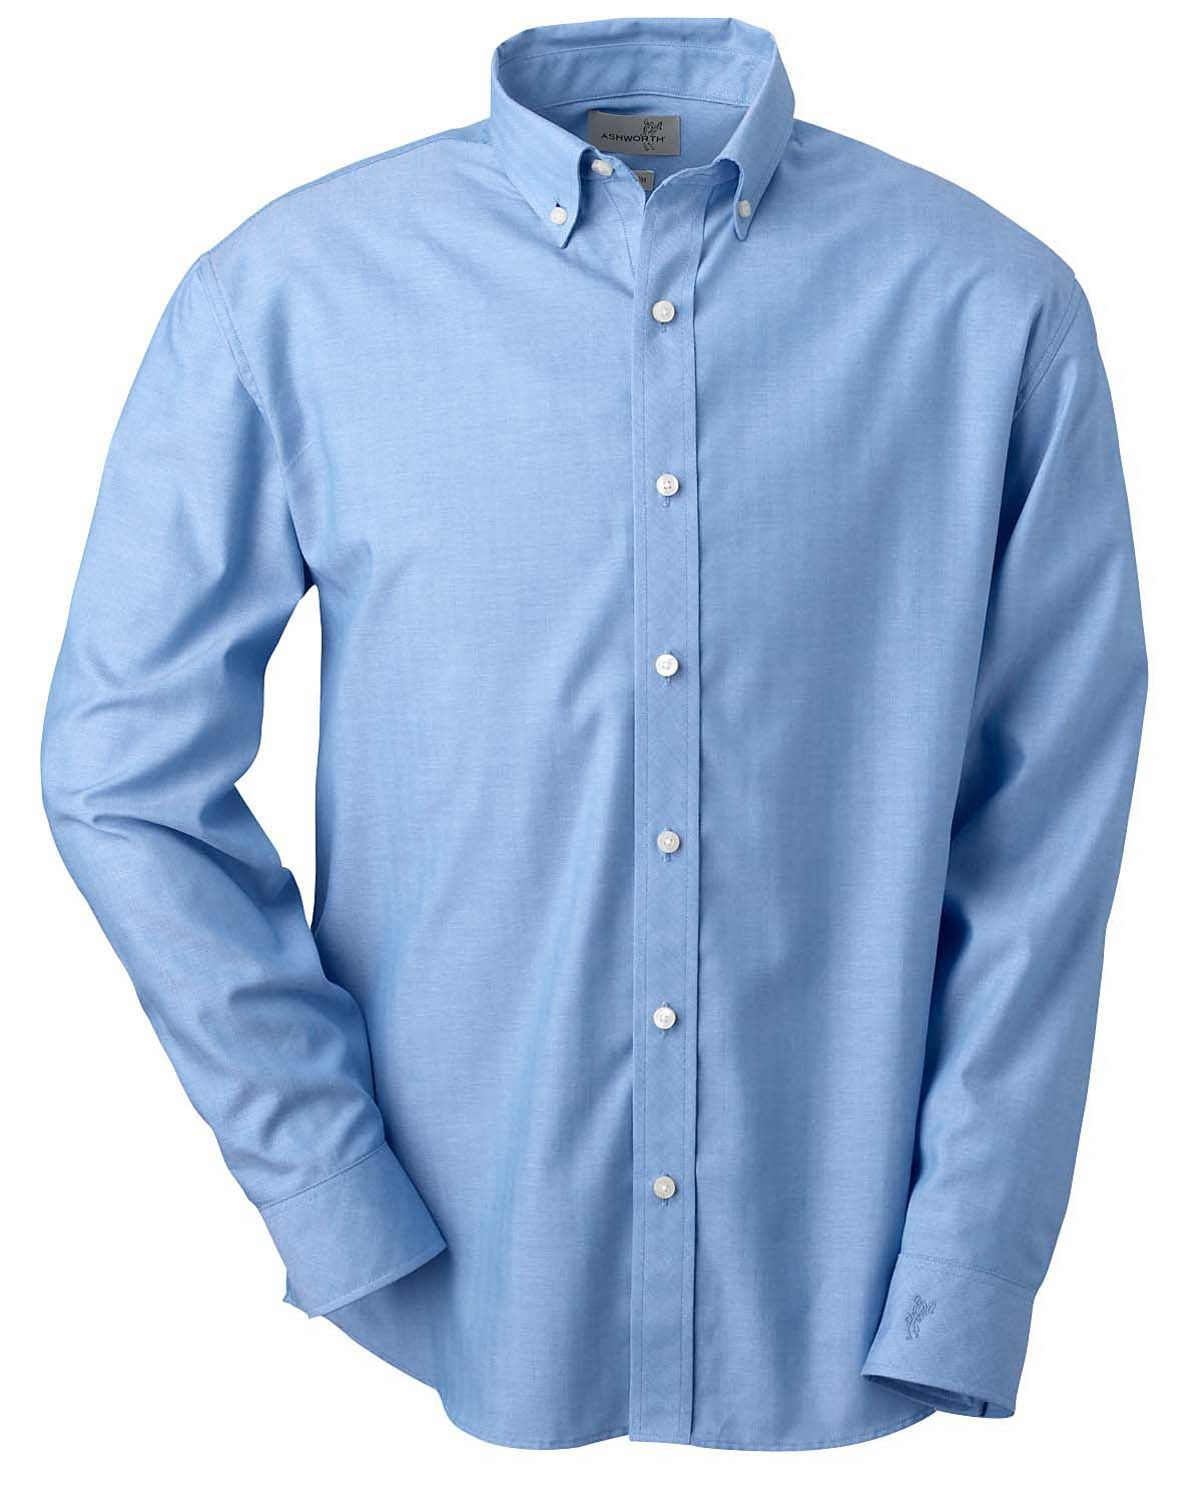 Mens Dress Shirt Google Search The History Of The Shirt